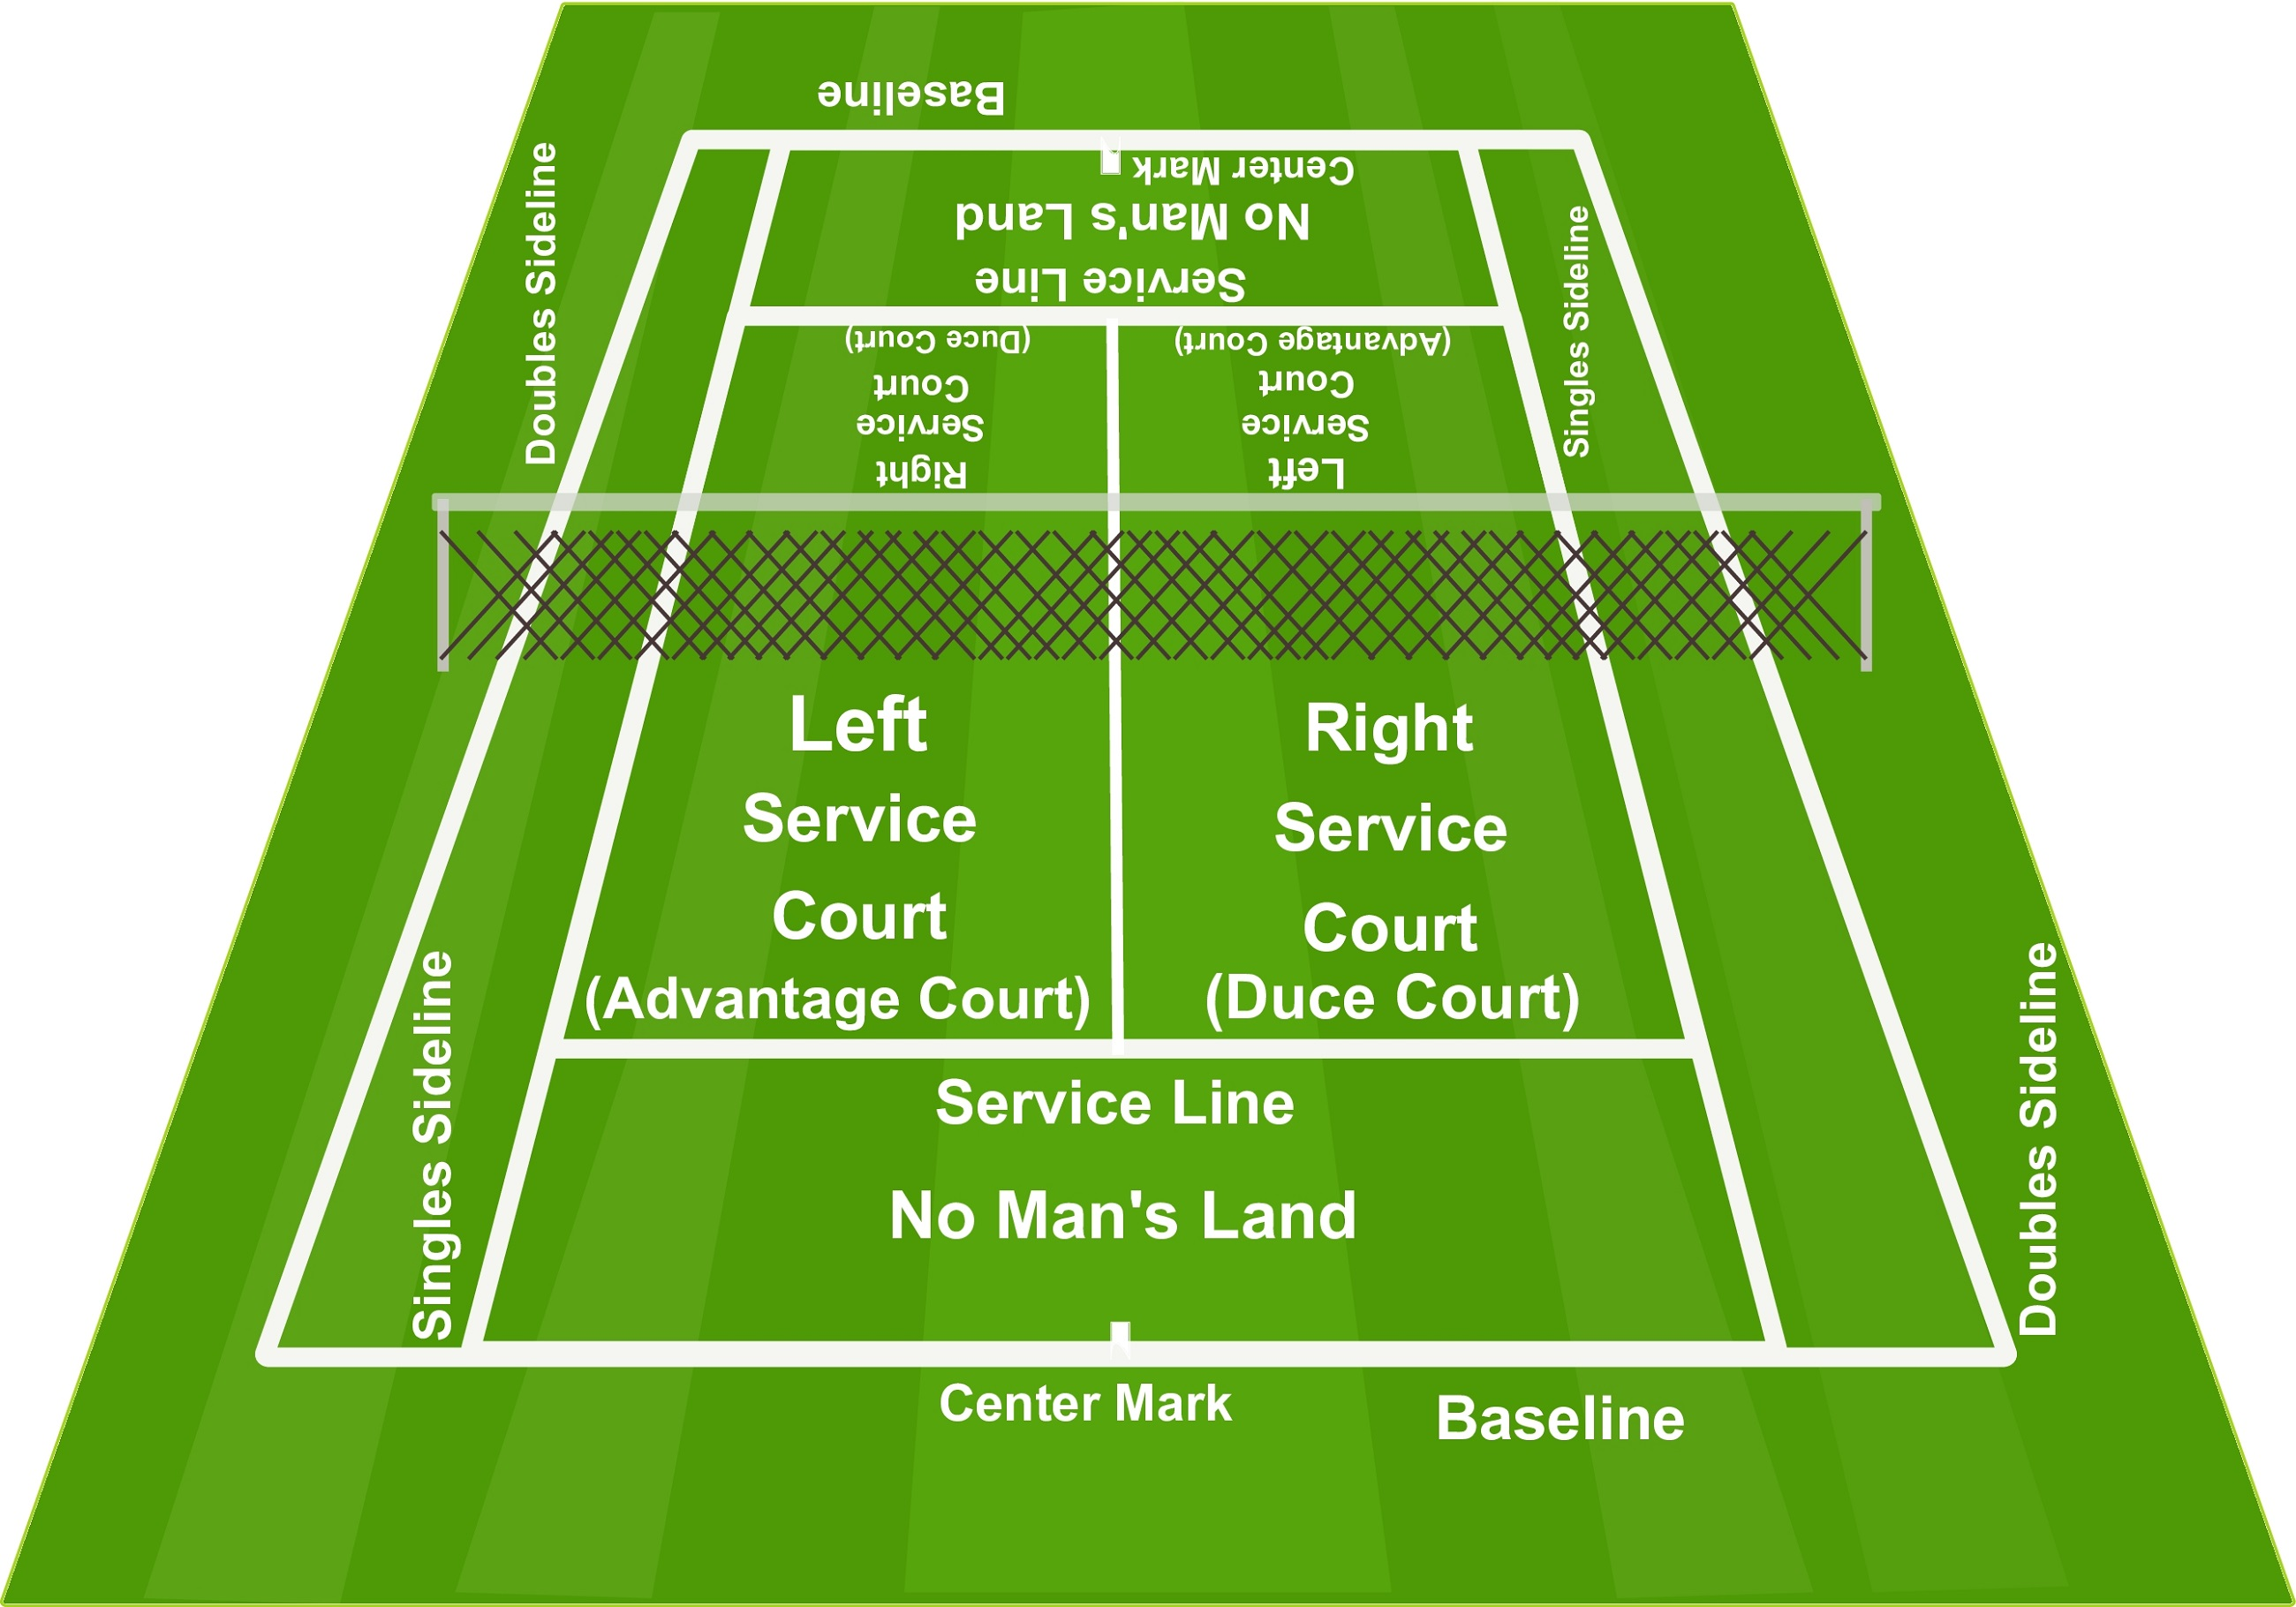 Tennis Court Diagram Labeled